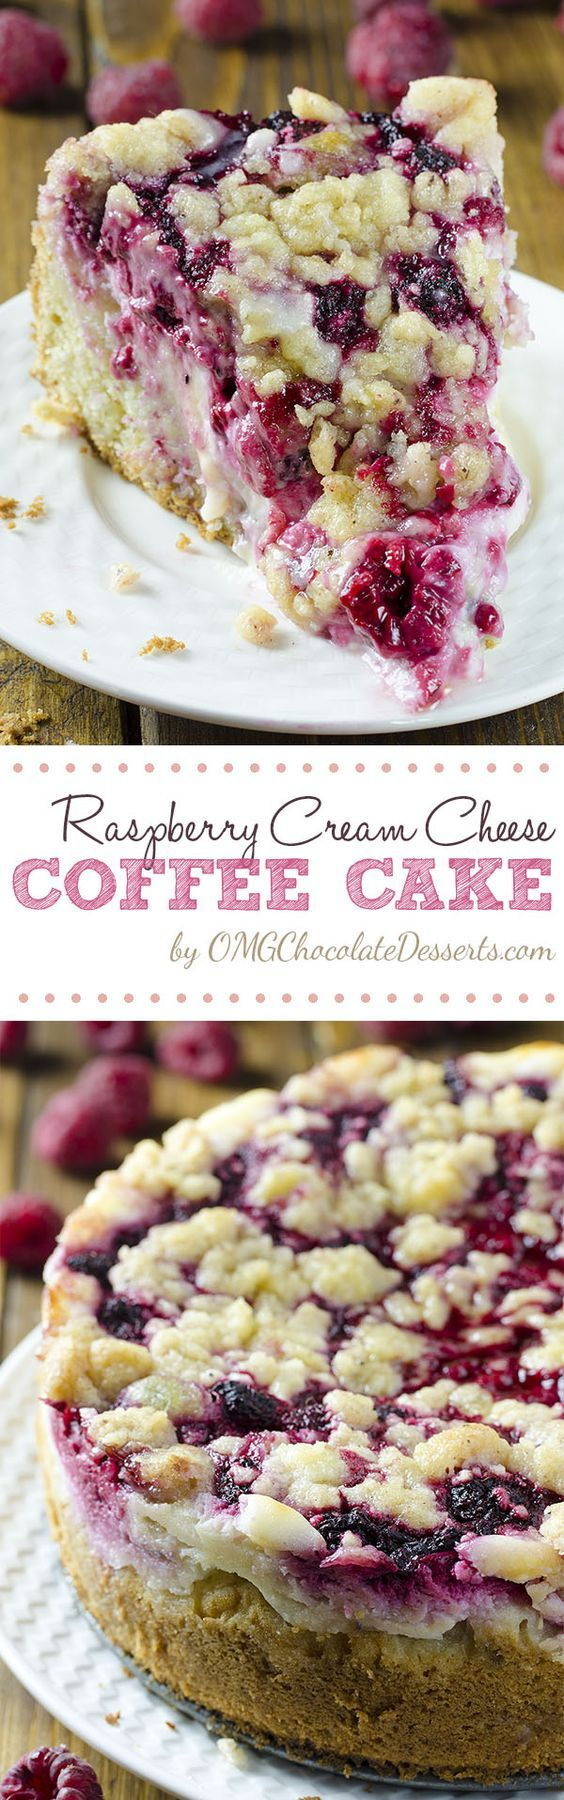 Raspberry Cream Cheese Coffee Cake – all flavors you love, you'll get here in every bite: moist and buttery cake, creamy cheesecake filling, juicy raspberries and crunchy streusel topping.